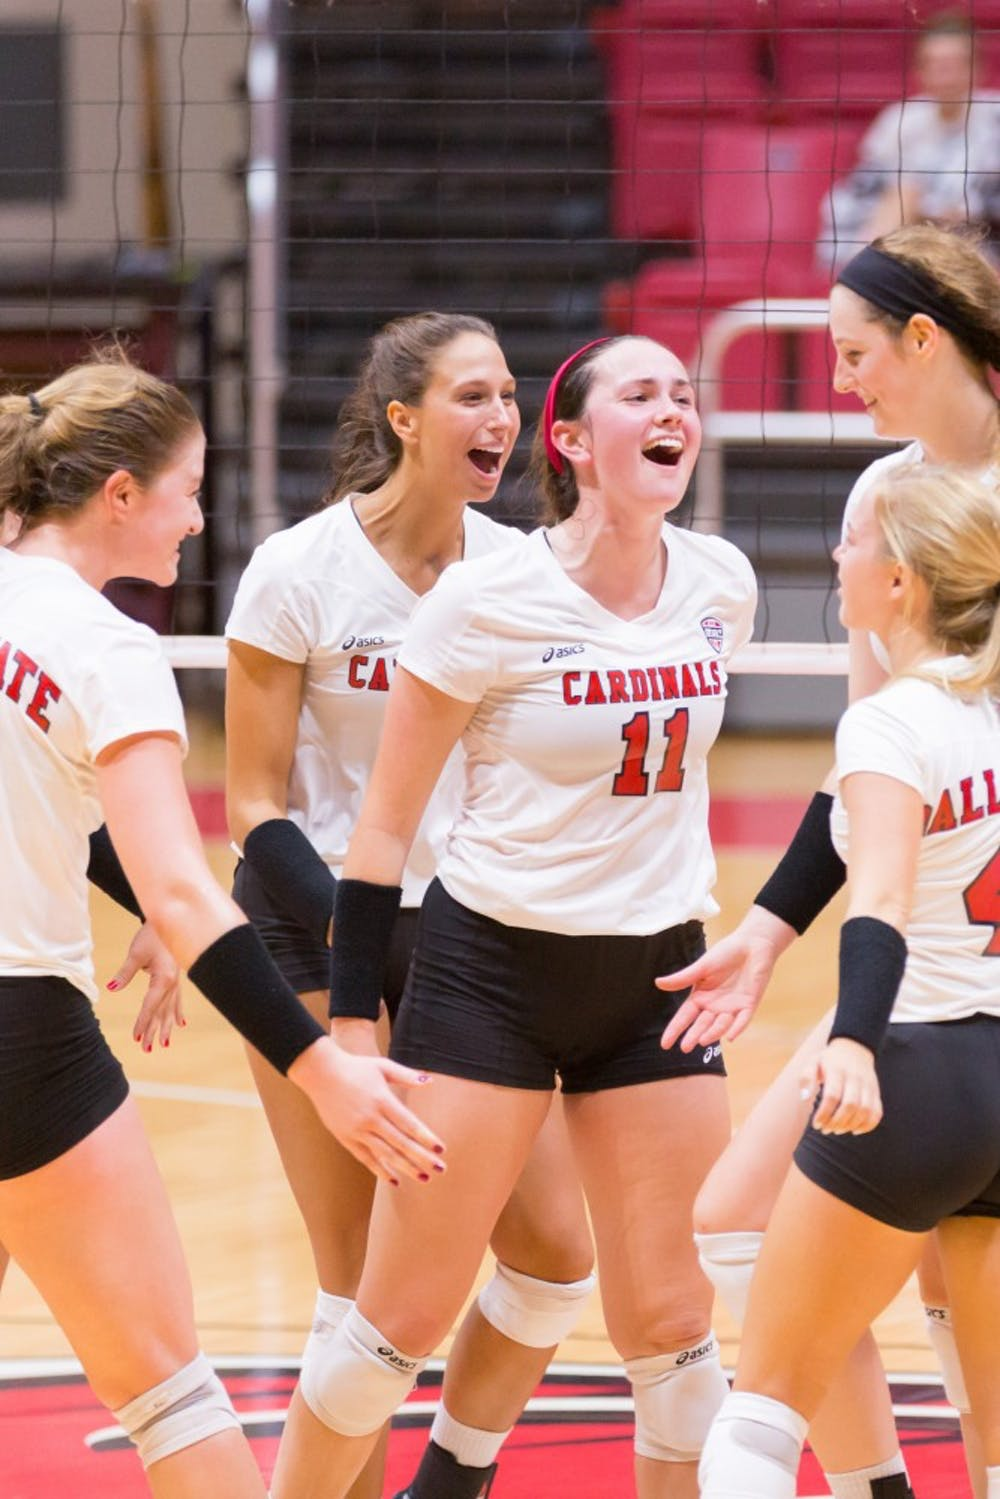 <p>Freshman setter Amber Seaman celebrates after a score with her fellow teammates at the game against IUPUI on Aug. 31, 2016 at John E. Worthen Arena. Friday's match against Indiana starts at 7 p.m.<br>  Kyle Crawford // DN File</p>